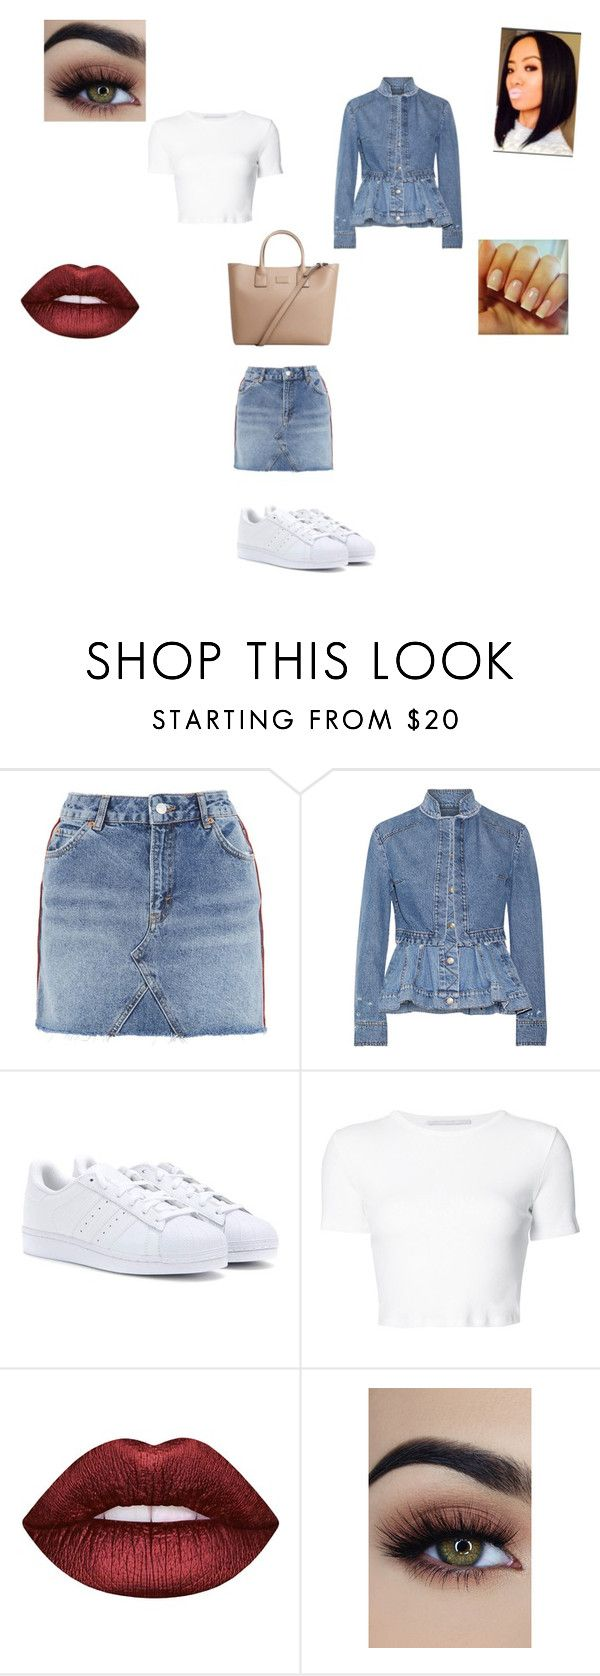 """""""My style"""" by hazelwoodnaomi on Polyvore featuring Topshop, Alexander McQueen, adidas, Rosetta Getty, Lime Crime and MANGO"""